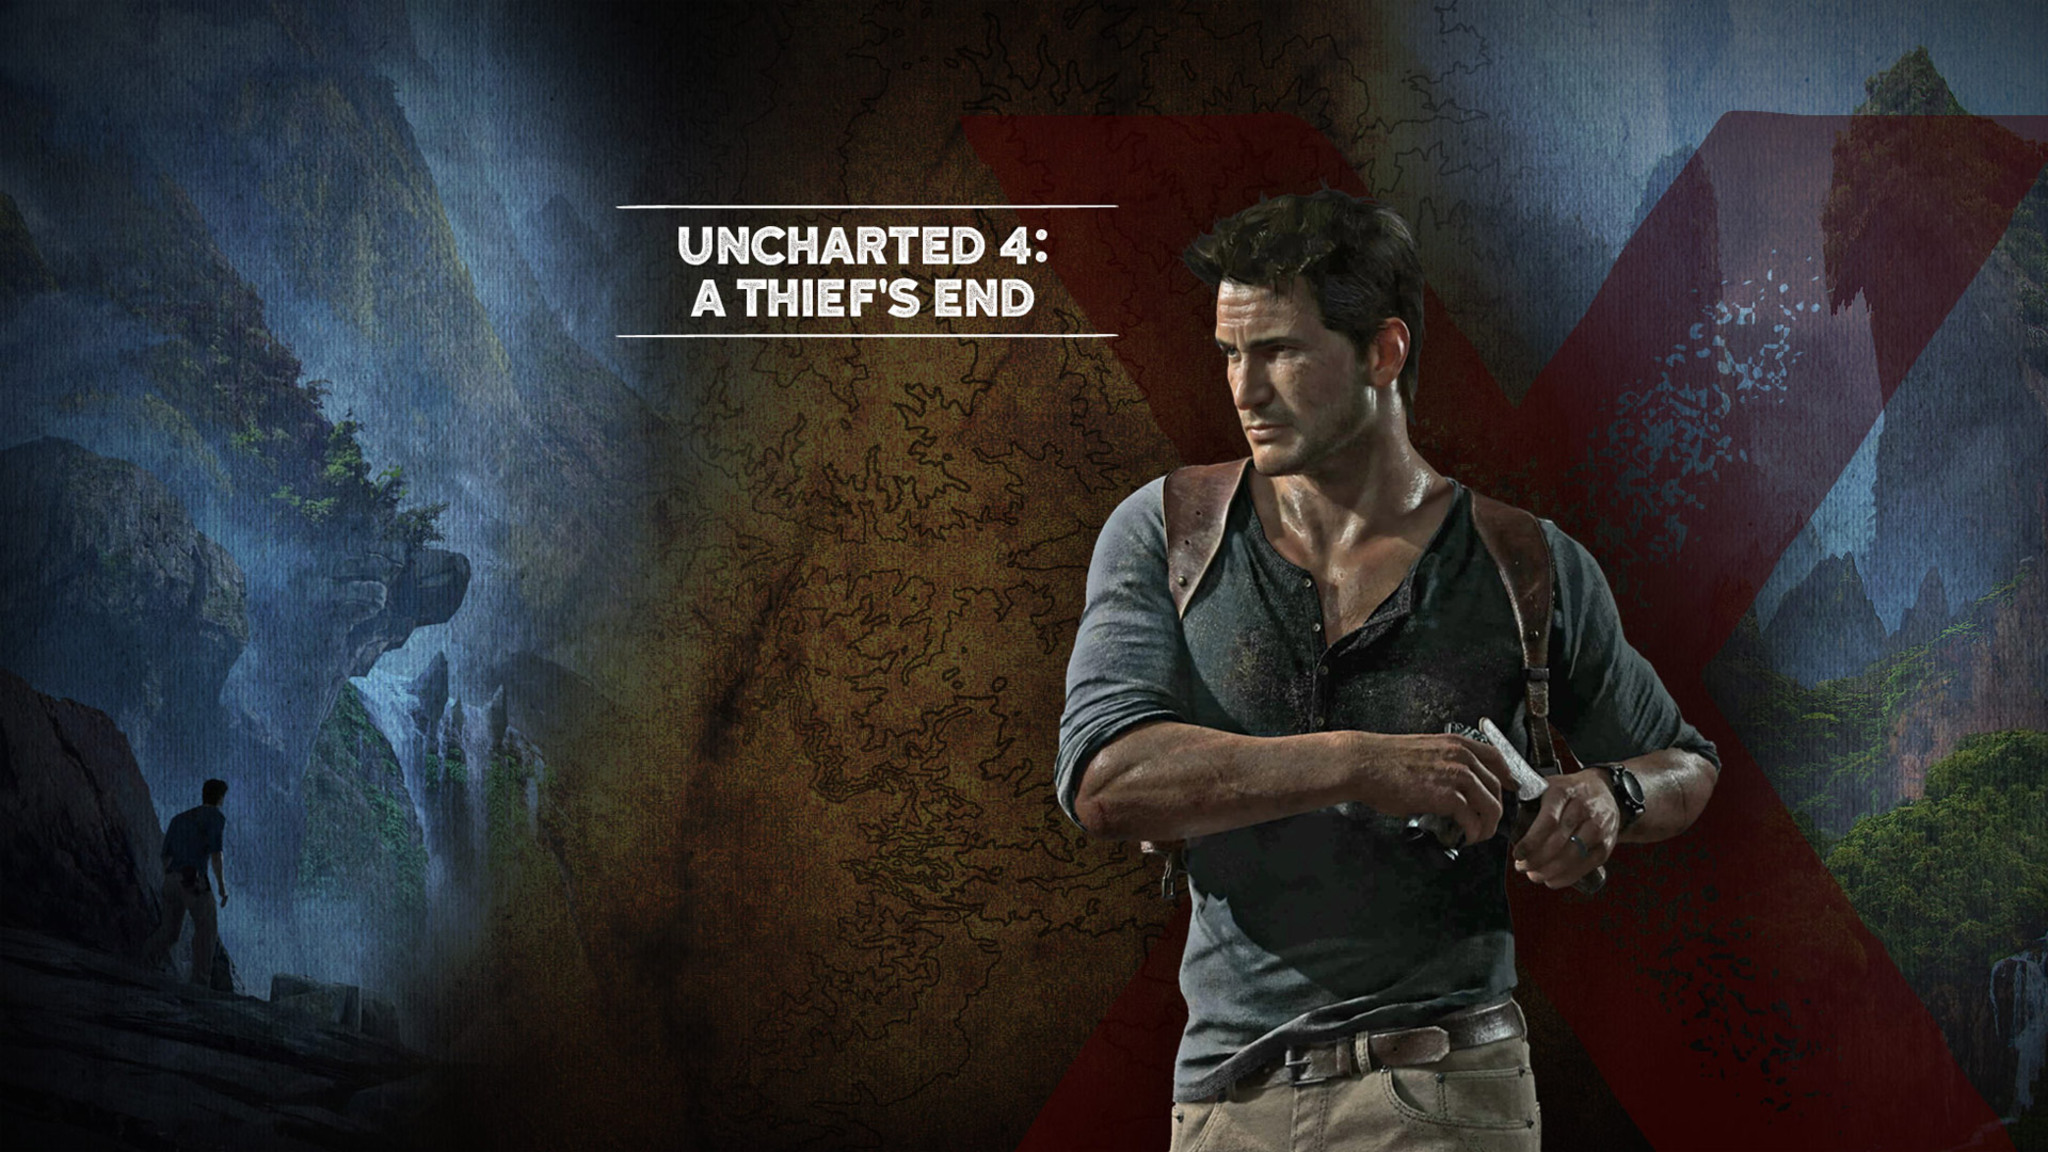 Cute Wallpapers  2048x1152 Uncharted 4 Game 2048x1152 Resolution Hd 4k